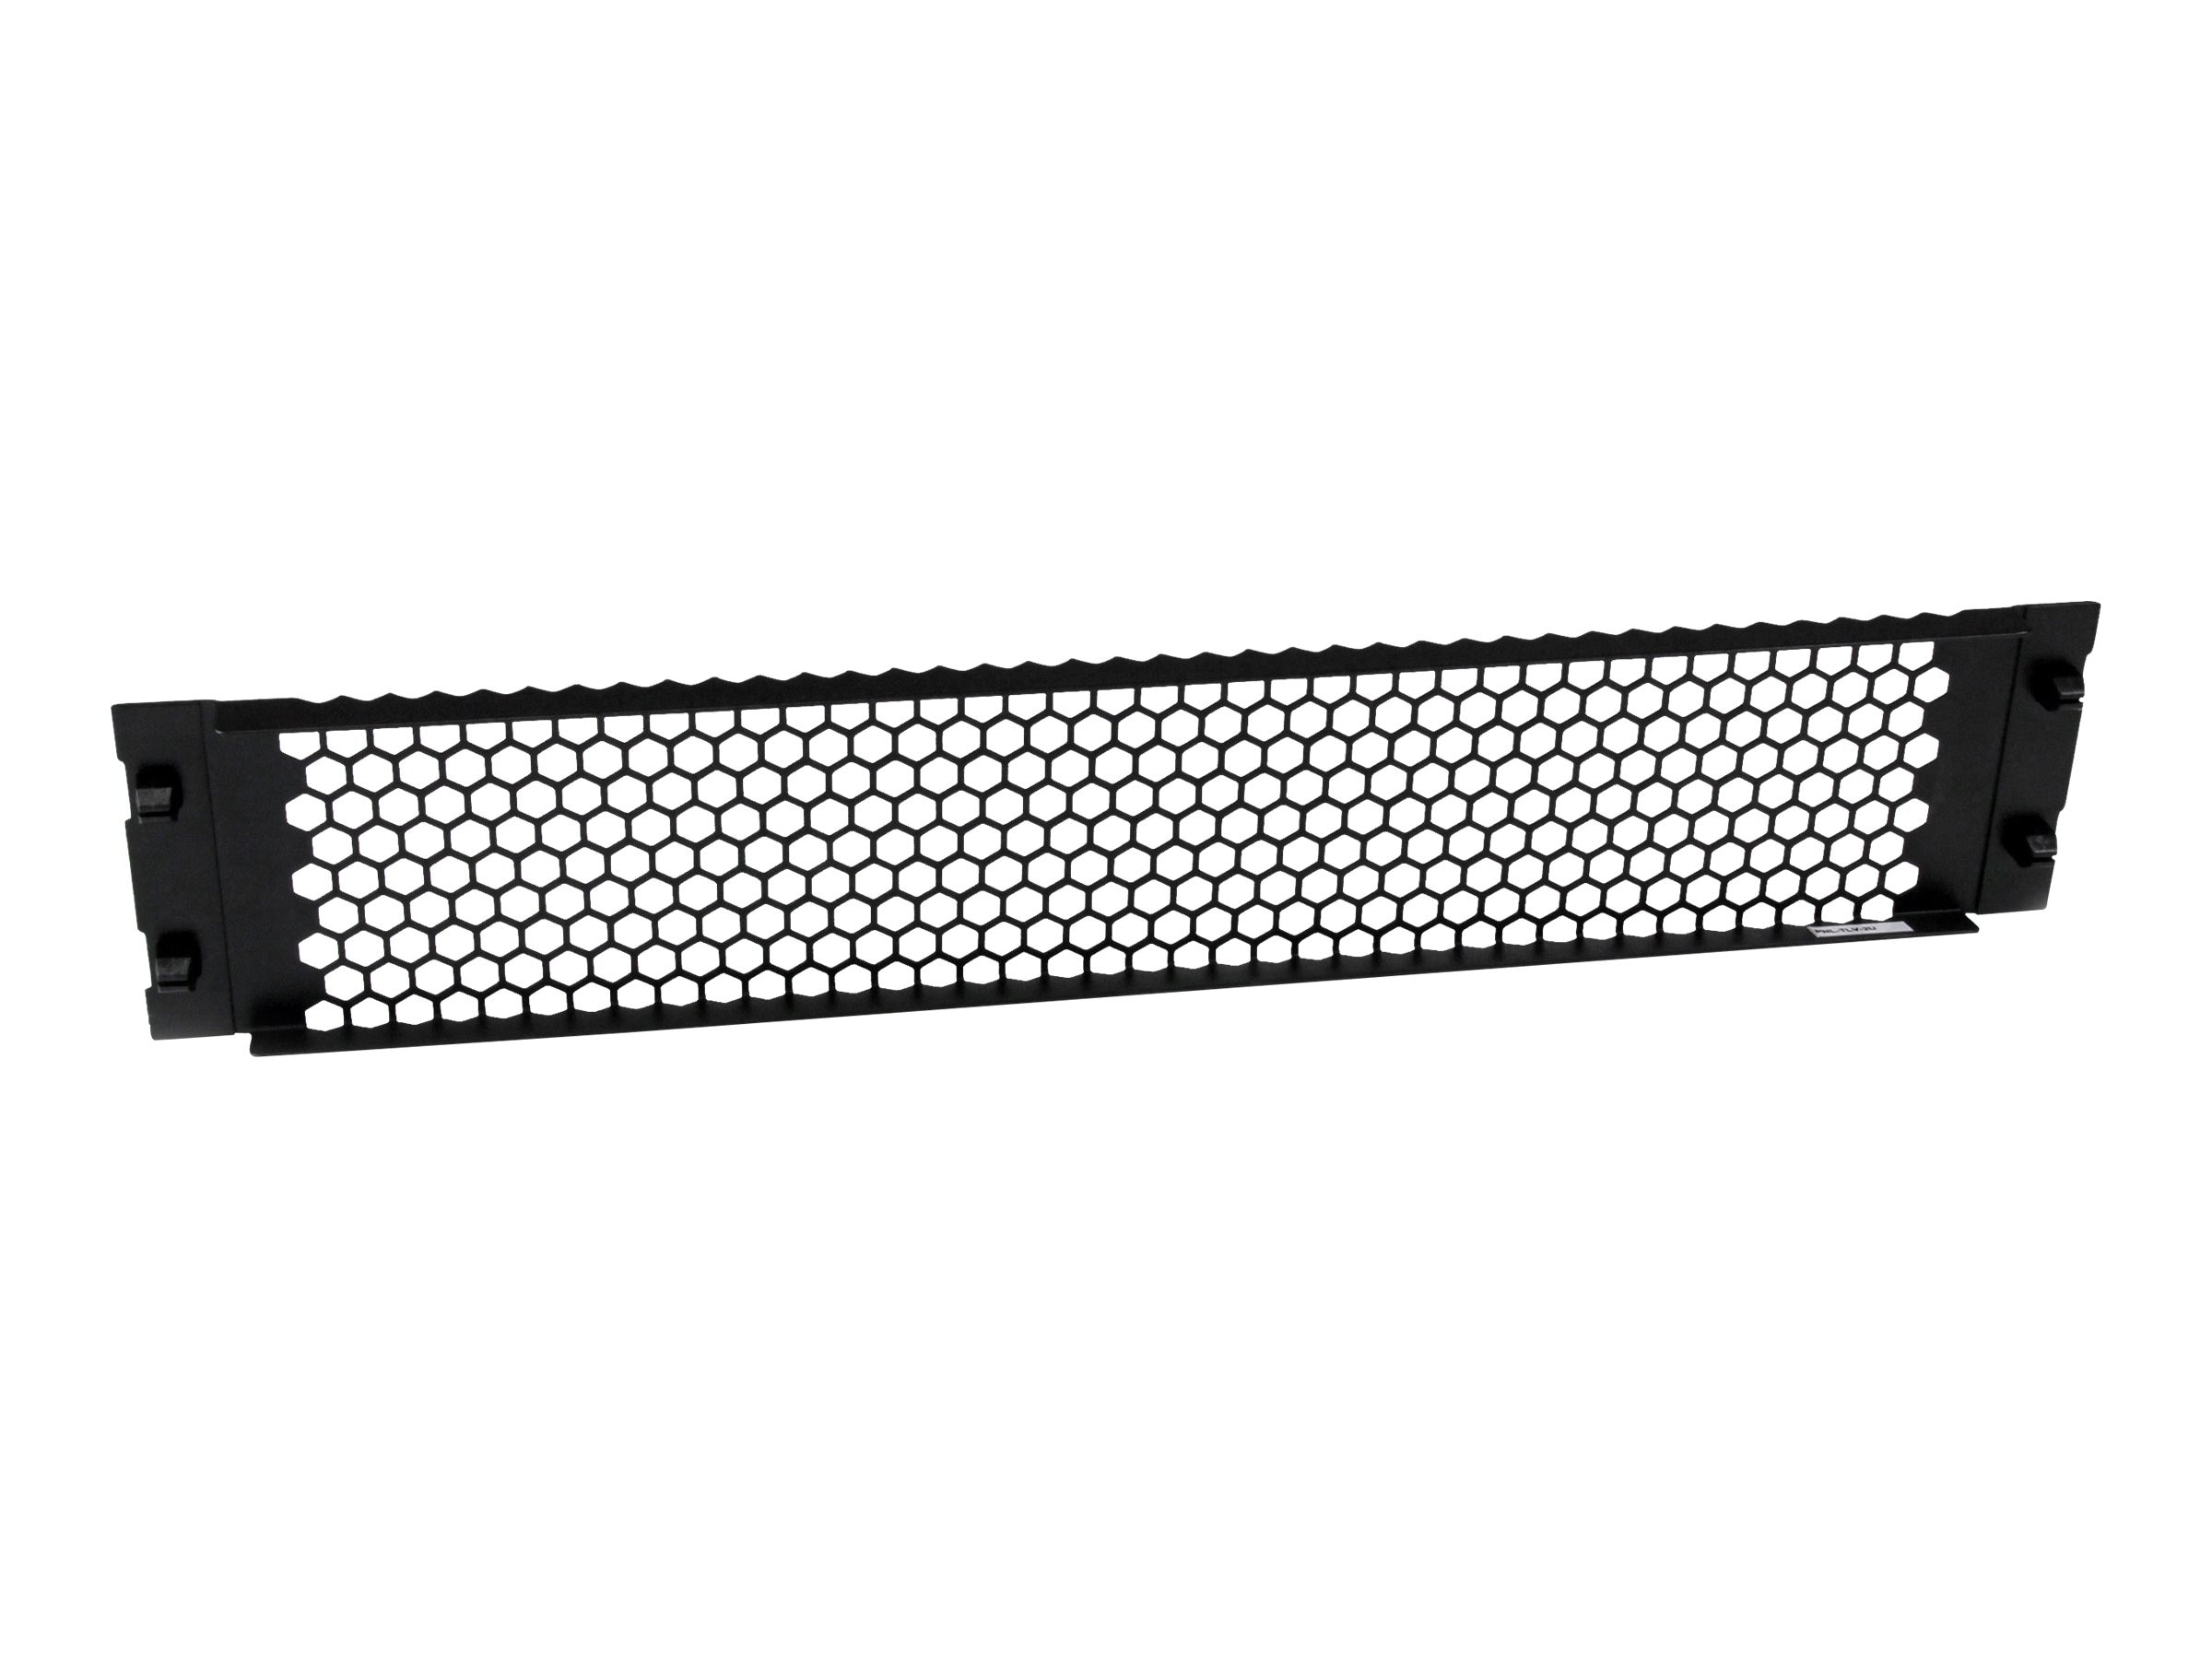 StarTech.com Tool-Less Vented Blank Rack Panel, 2U, RKPNLTL2UV